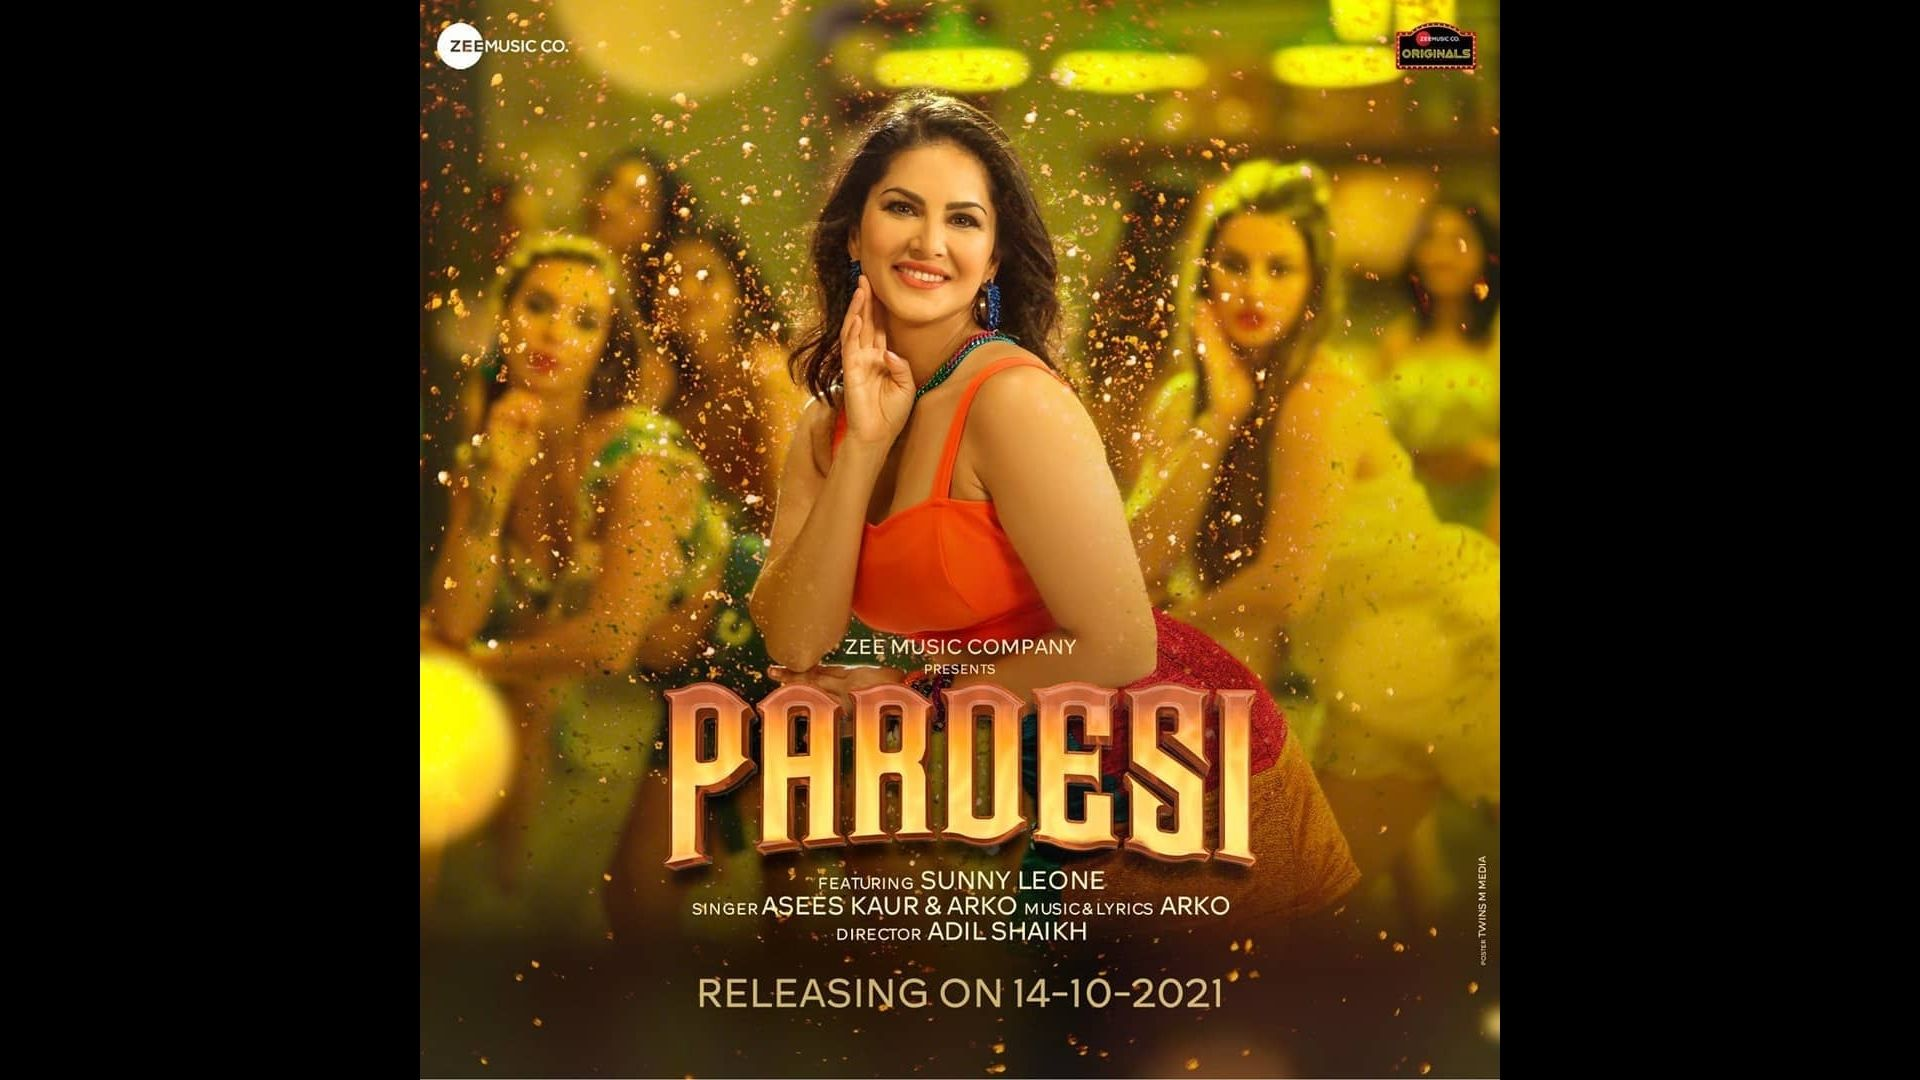 Pardesi Song Out: Sunny Leone Looks Ravishing; Her Mesmerizing Dance Moves Will Get You Grooving